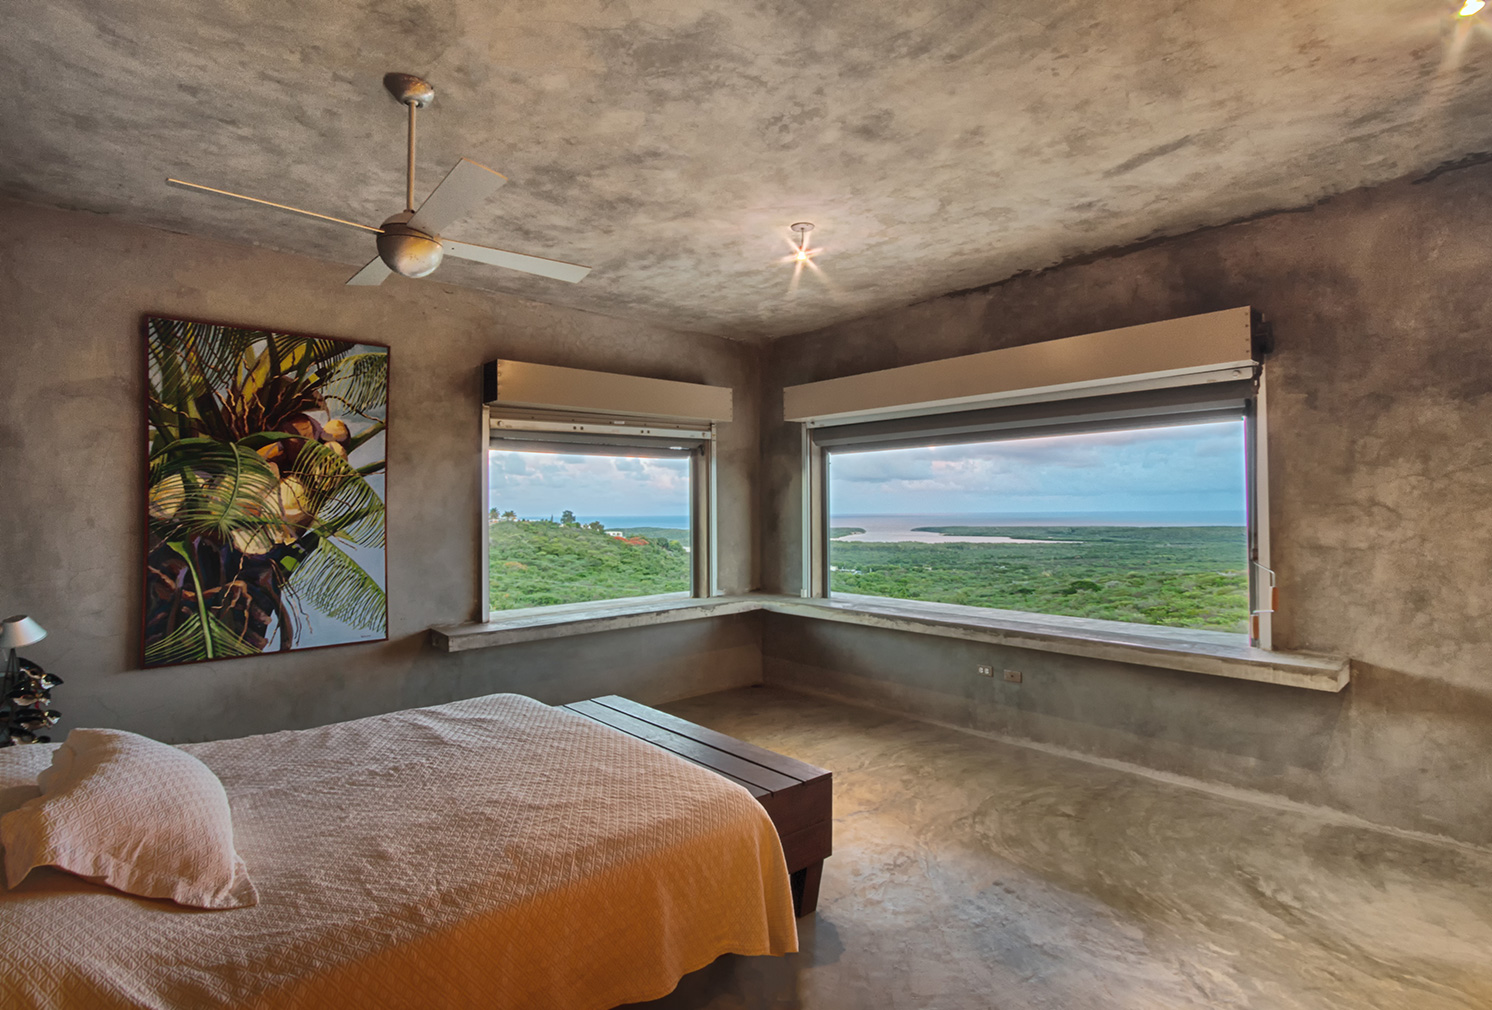 This brutalist eco-home is for sale on Puerto Rico's Vieques Island